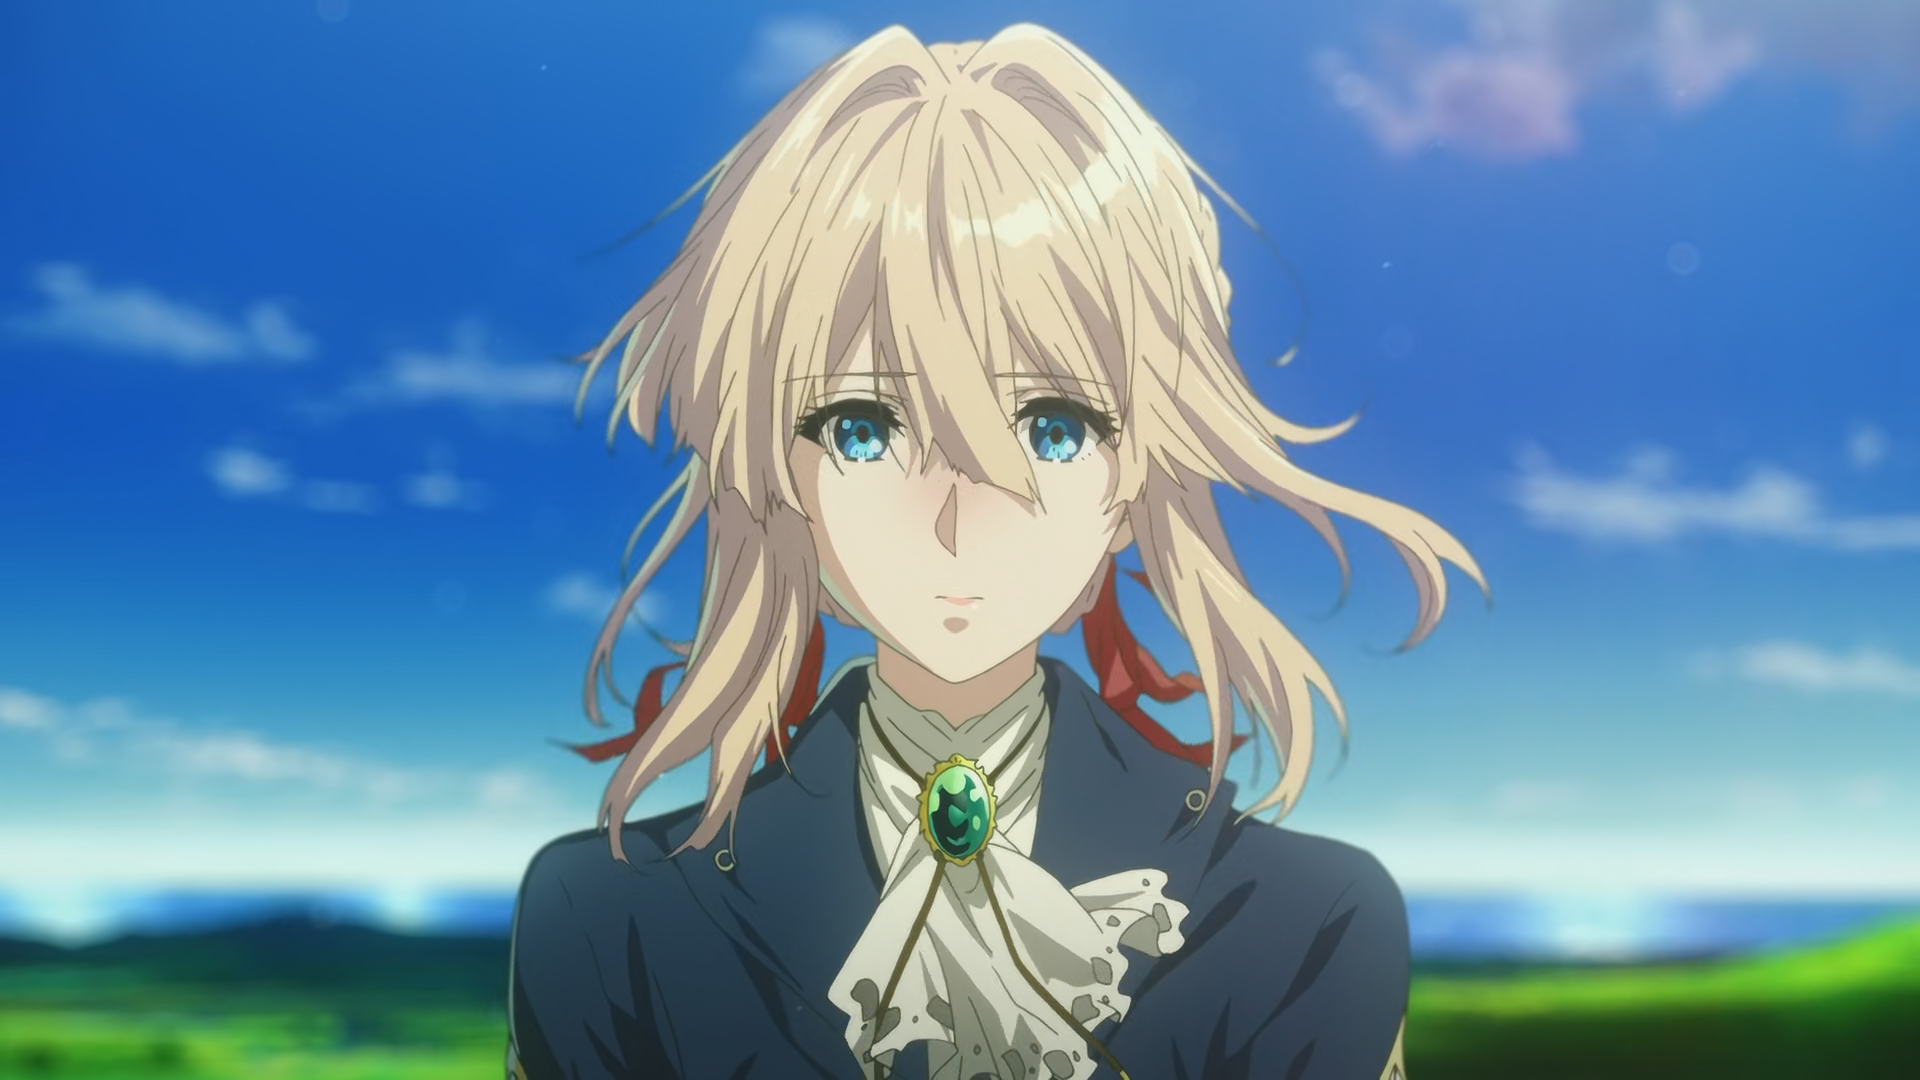 Violet Evergarden Season 2 Release Date Updates: 5 Thing You Need To Know About It